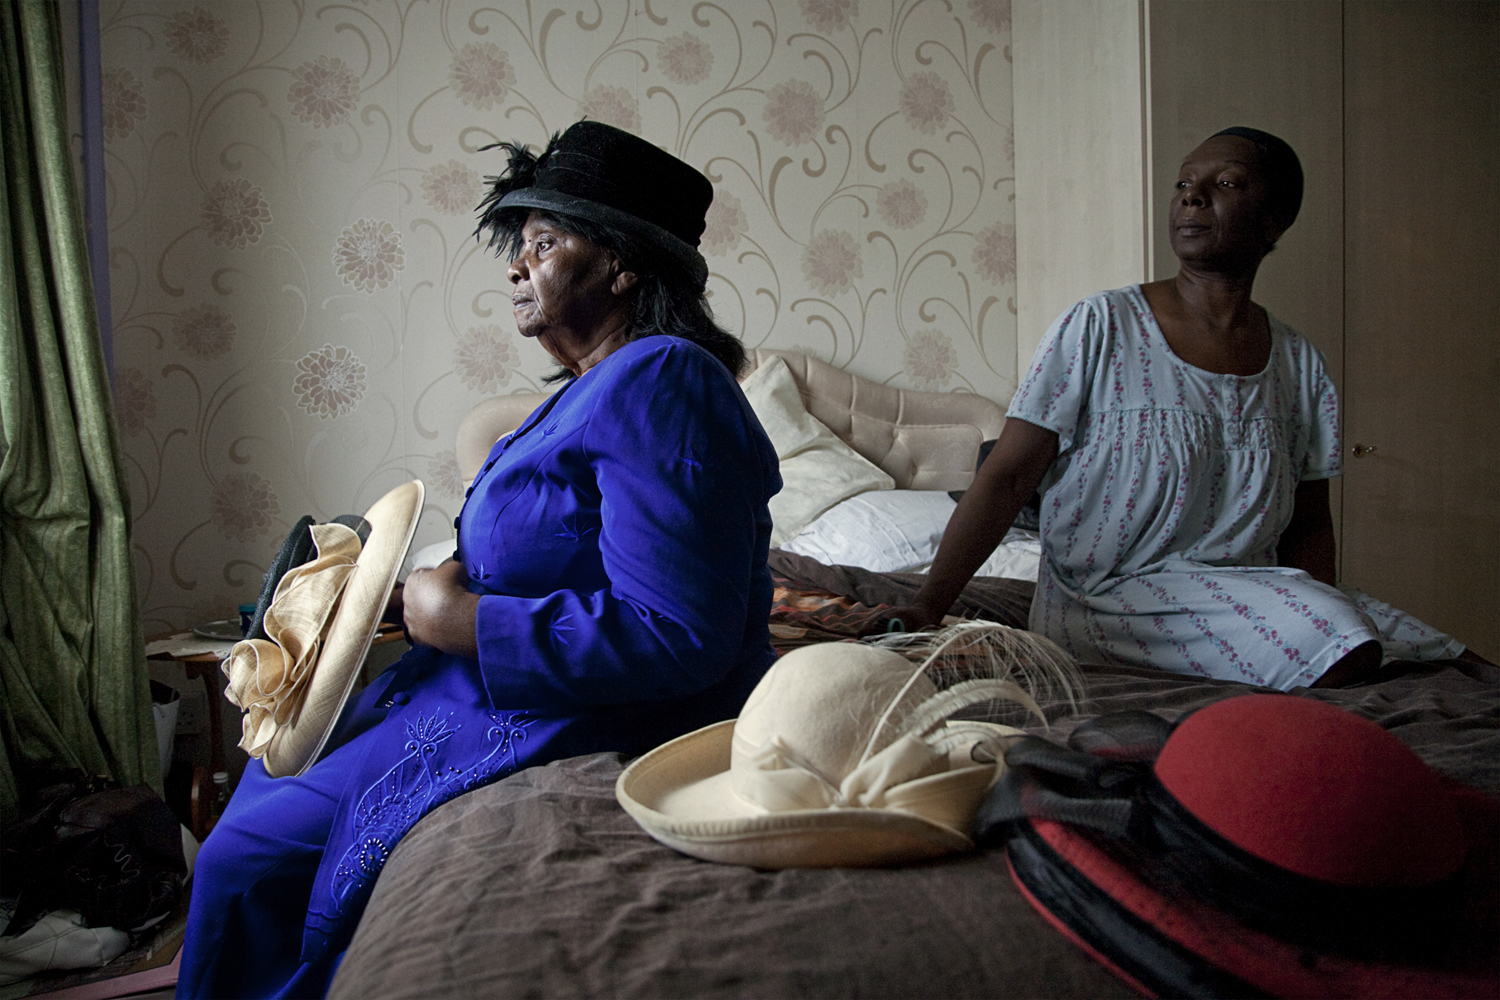 Jamaican-born Mrs. Adina Clarke and her daughter review her hat collection before church. In Jamaican tradition Adina keeps a separate part of her wardrobe for her Sunday clothes and refrains from wearing them for any occasion other than church.